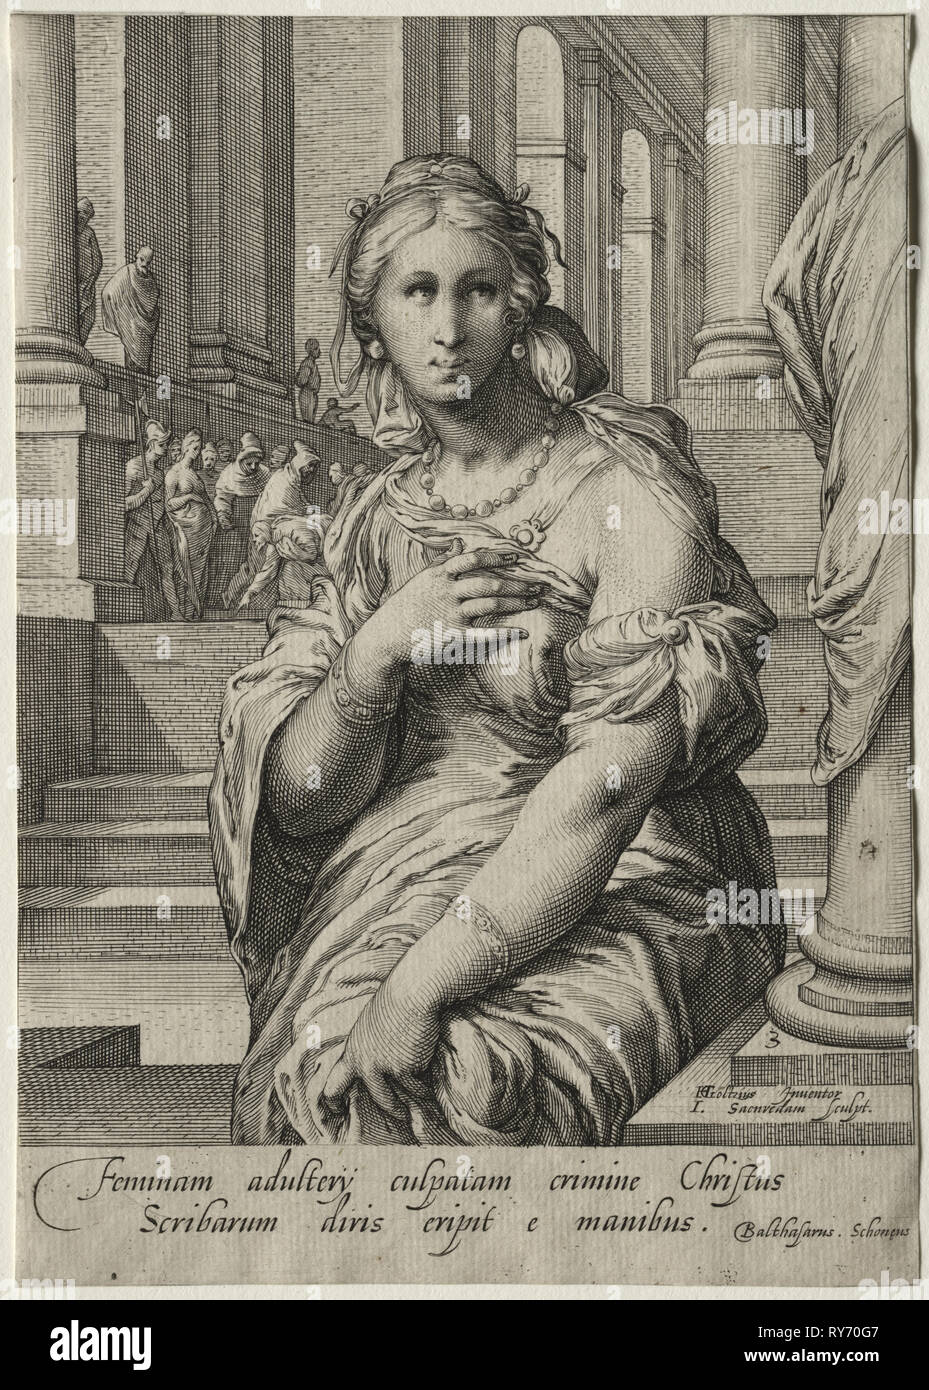 Heroines of the New Testament:  The Woman Taken in Adultery. Jan Saenredam (Dutch, 1565-1607). Engraving - Stock Image